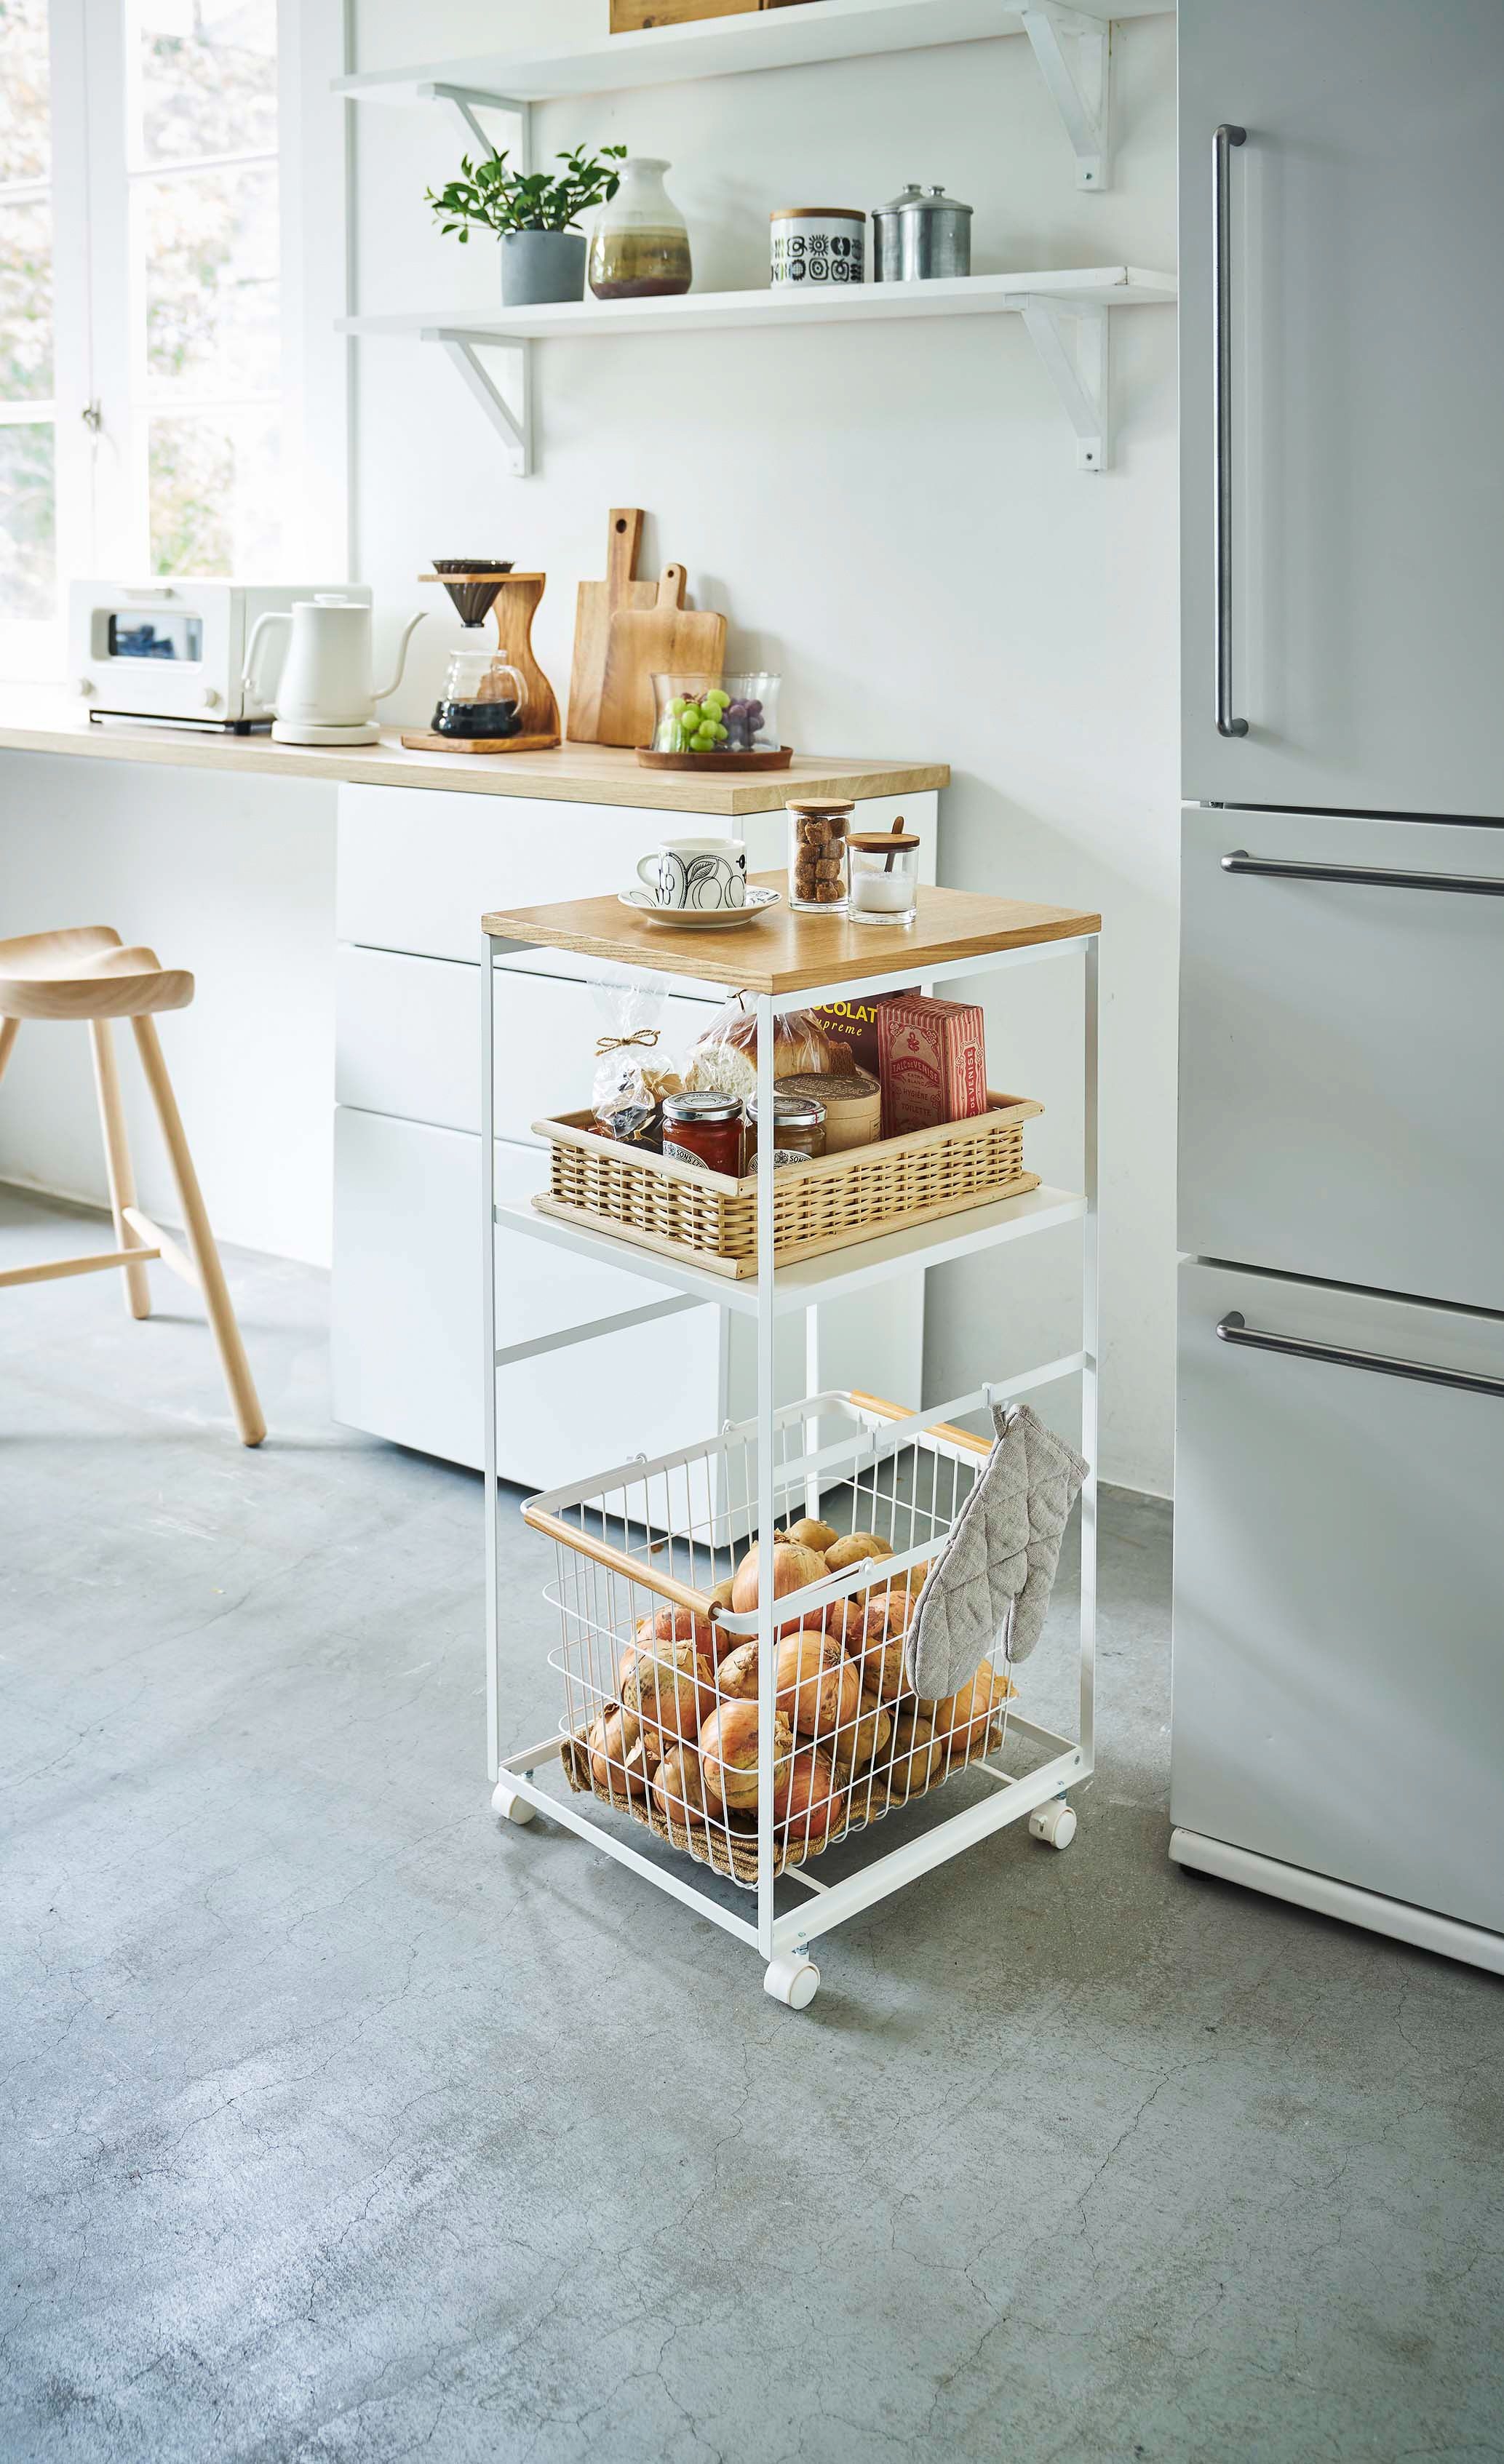 An extra table on wheels! This rolling kitchen cart boasts three levels of storage. Use the wooden tabletop as an appliance rack or breakfast bar. Bottom two levels add extra storage for spices, vegetables, or dried food storage. Use hooks for hanging utensils or pot holders. Roll it over to the dining table or around the kitchen with ease, then tuck it away when not in use. Cart and baskets sold separately.